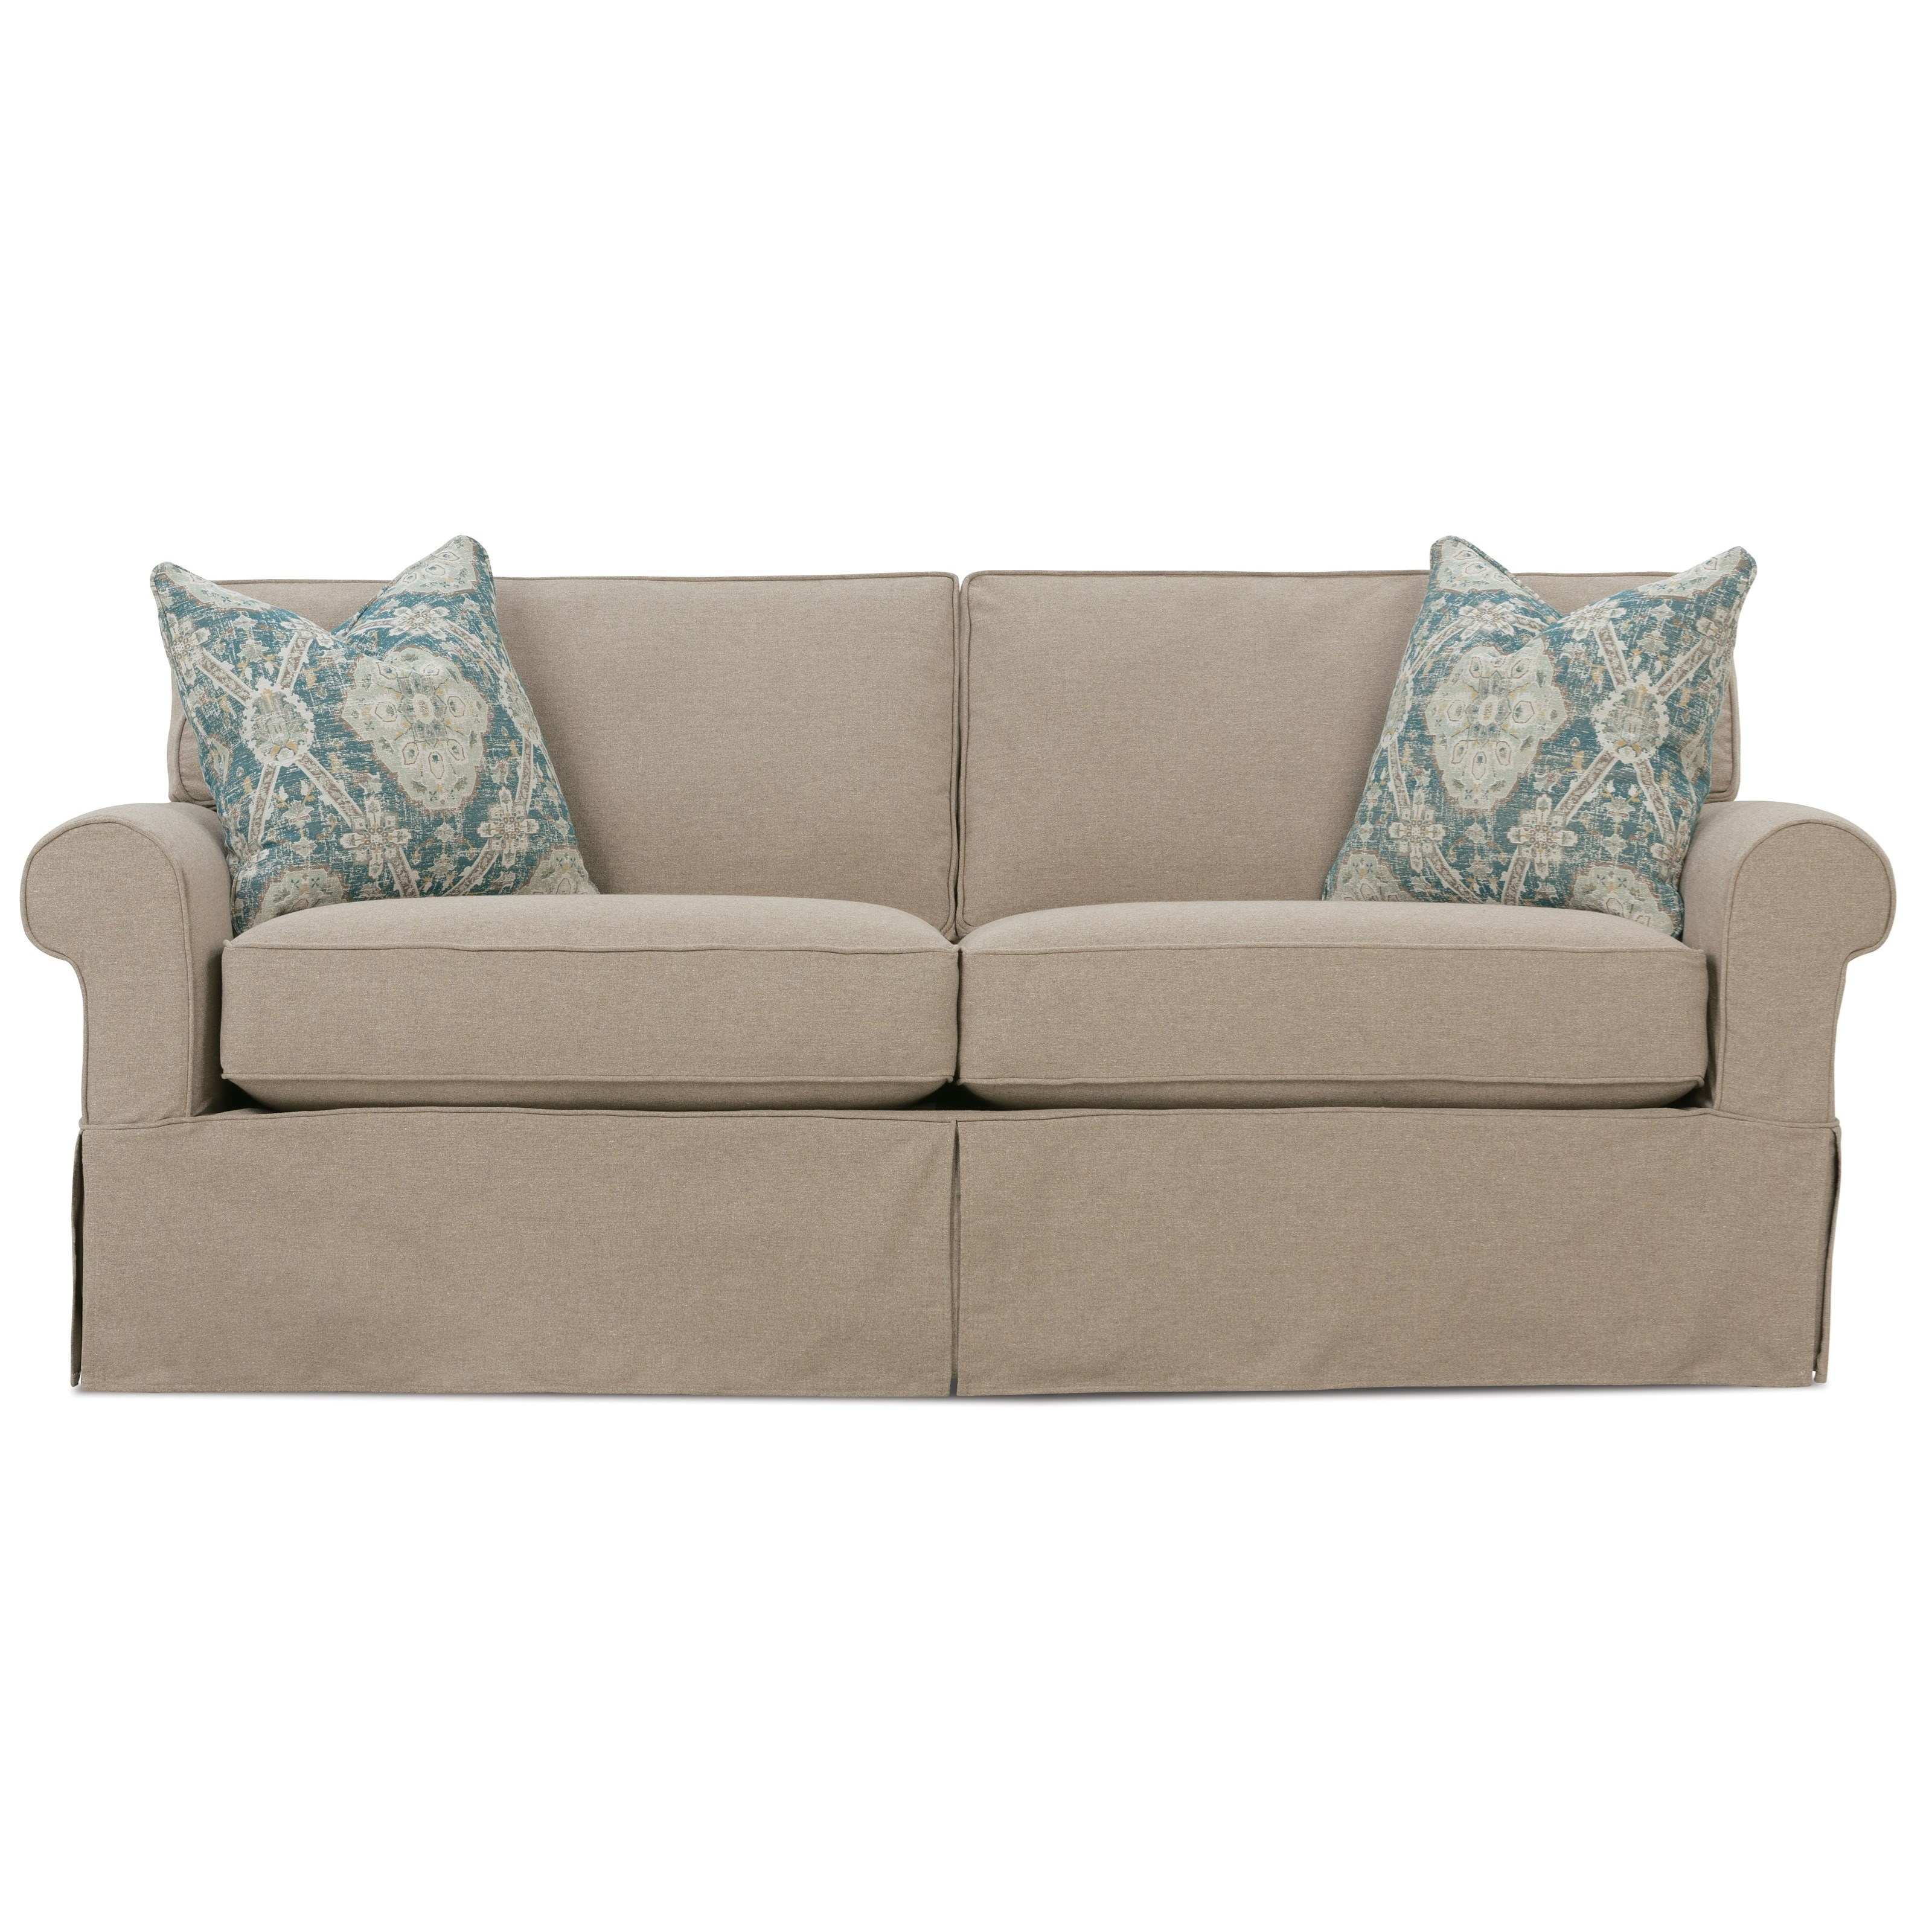 Rowe nantucket a919b 000 2 seat queen slipcover sofa for 2 seat sofa slipcover